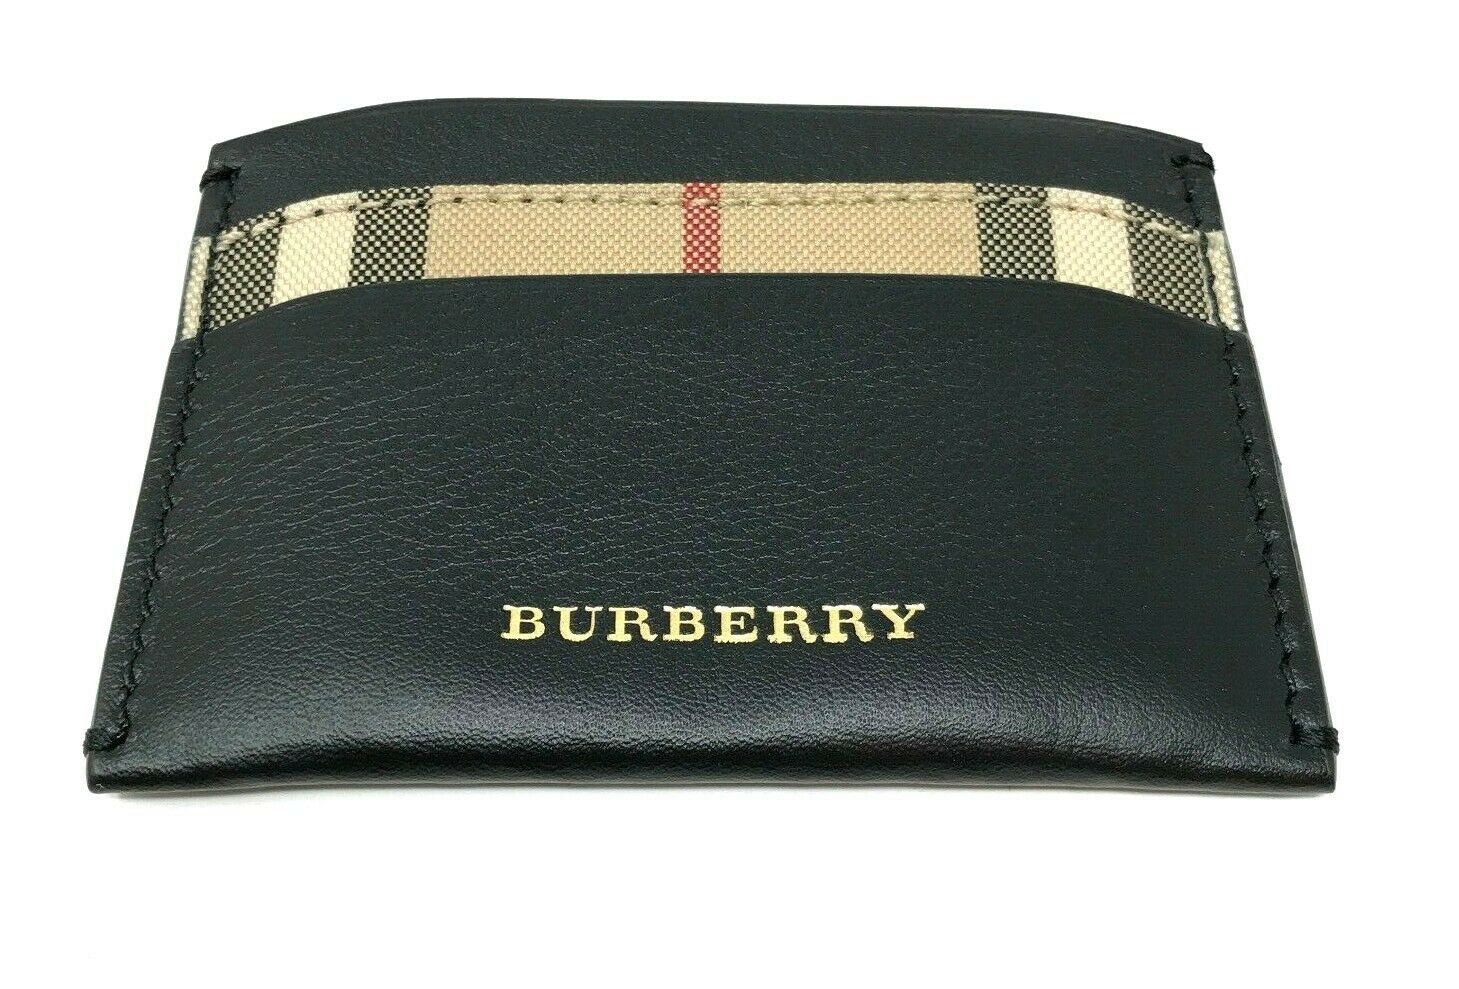 Burberry Men's Horseferry Check Izzy Black Leather Card Case Wallet